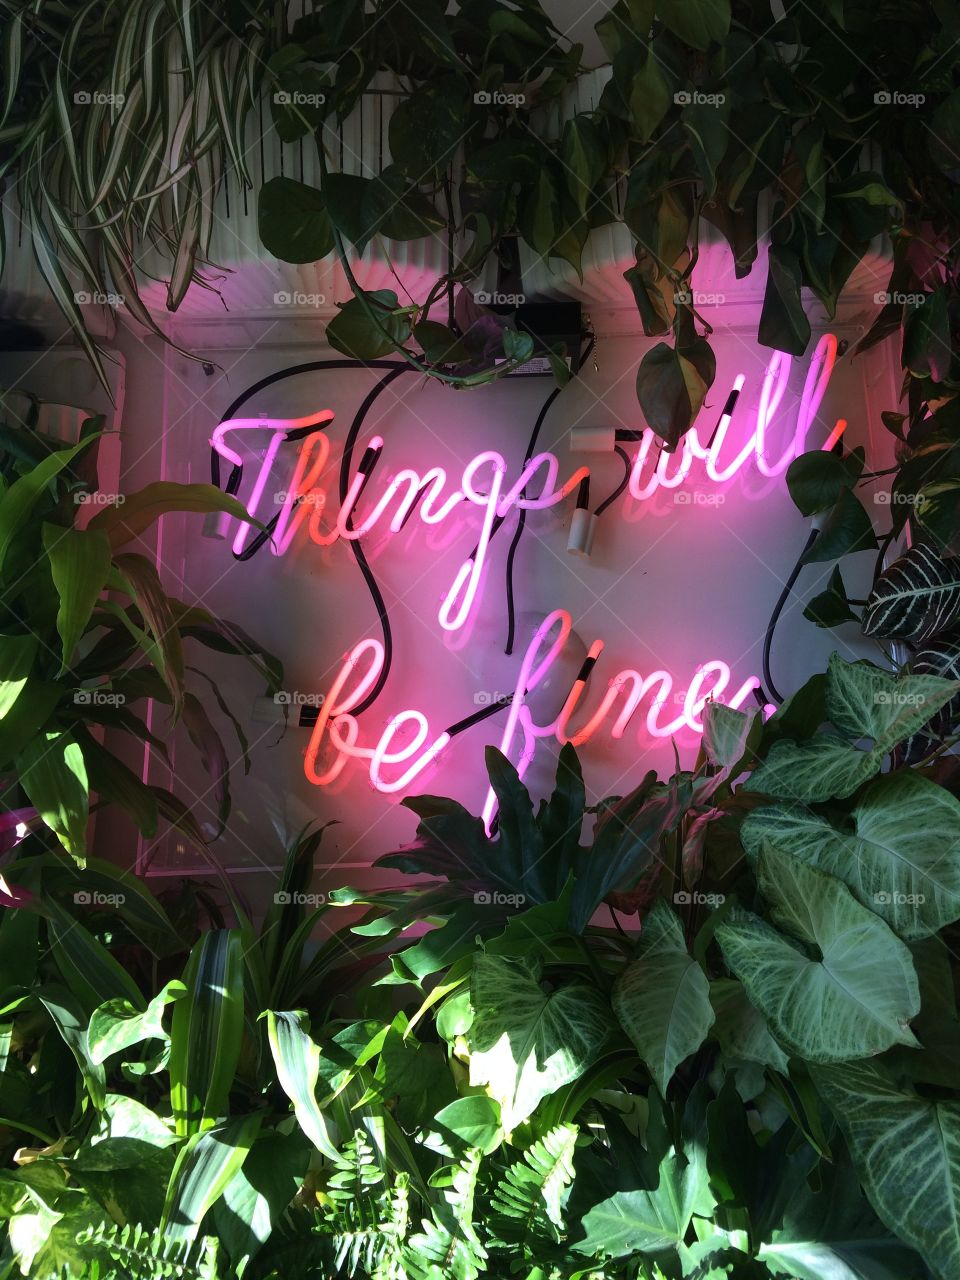 Things will be fine.